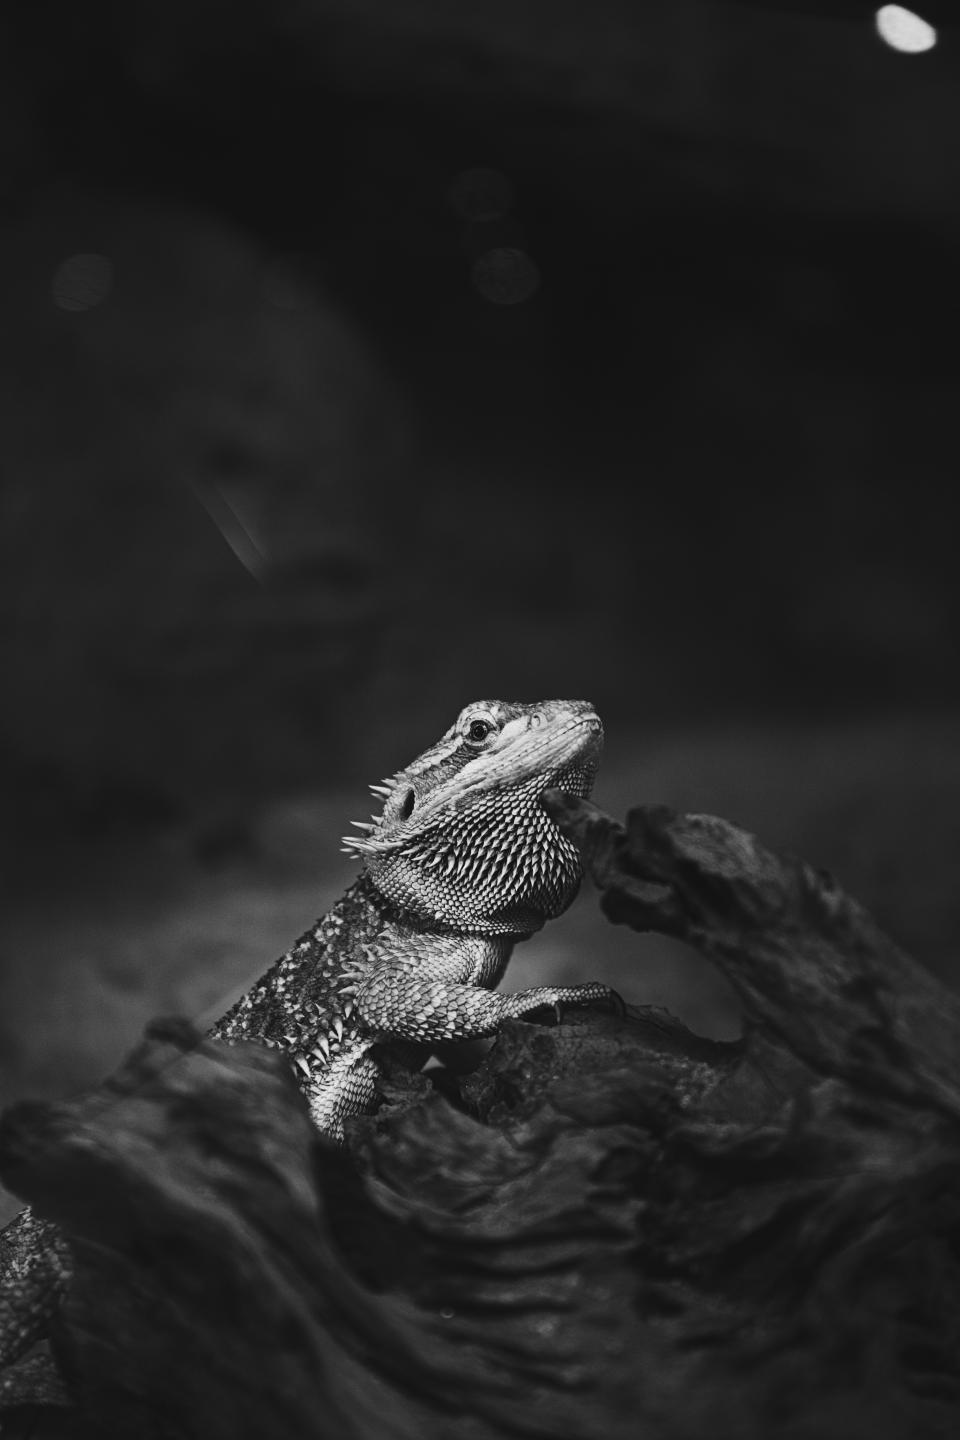 animals pet lizard iguana black and white trunk tree bokeh blur